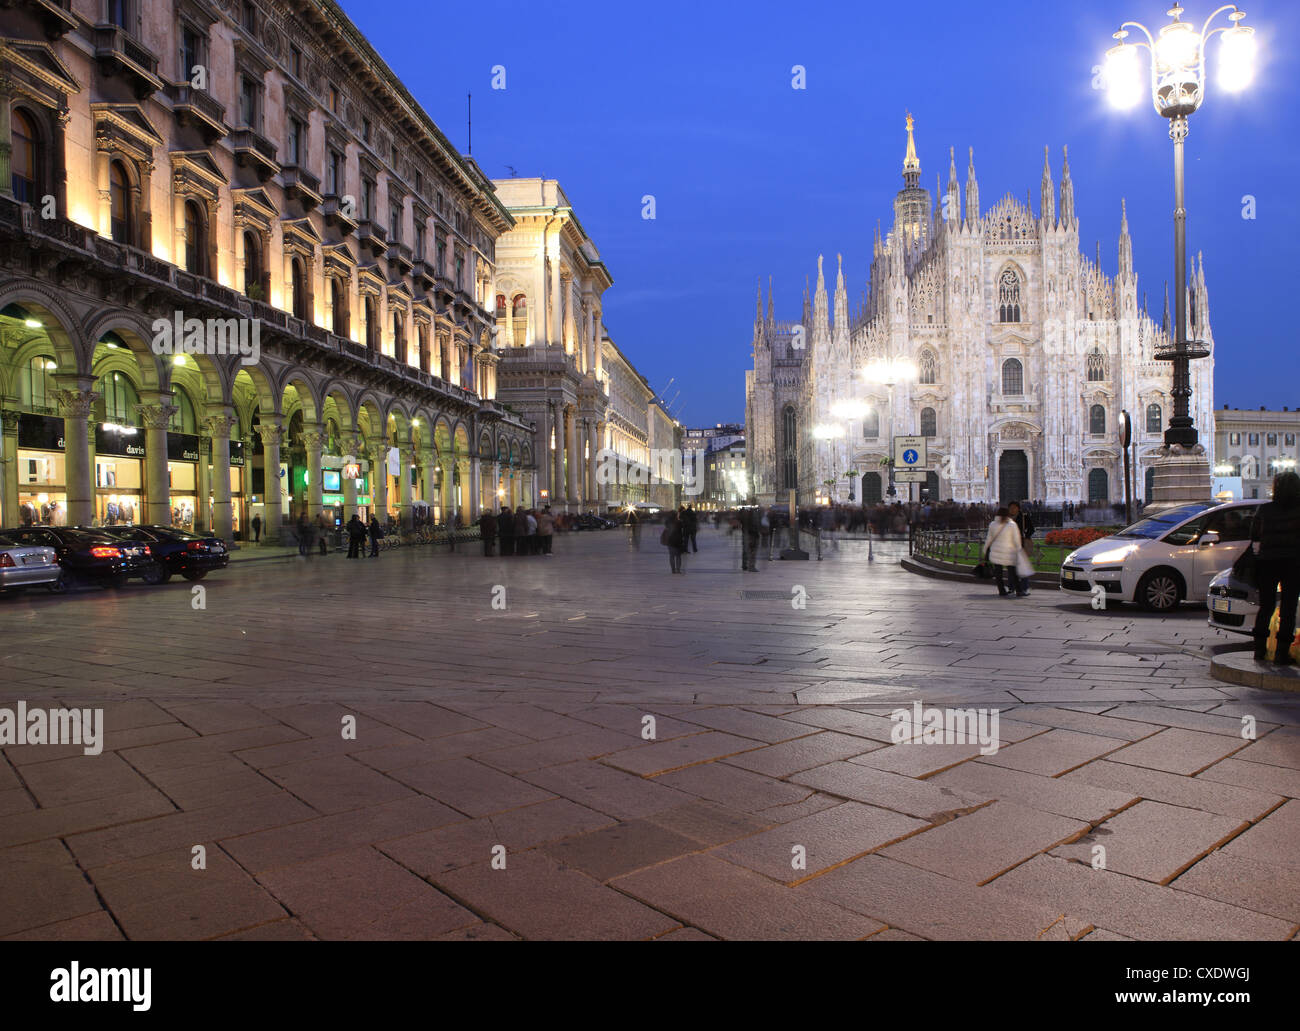 Piazza Duomo at dusk, Milan, Lombardy, Italy, Europe - Stock Image